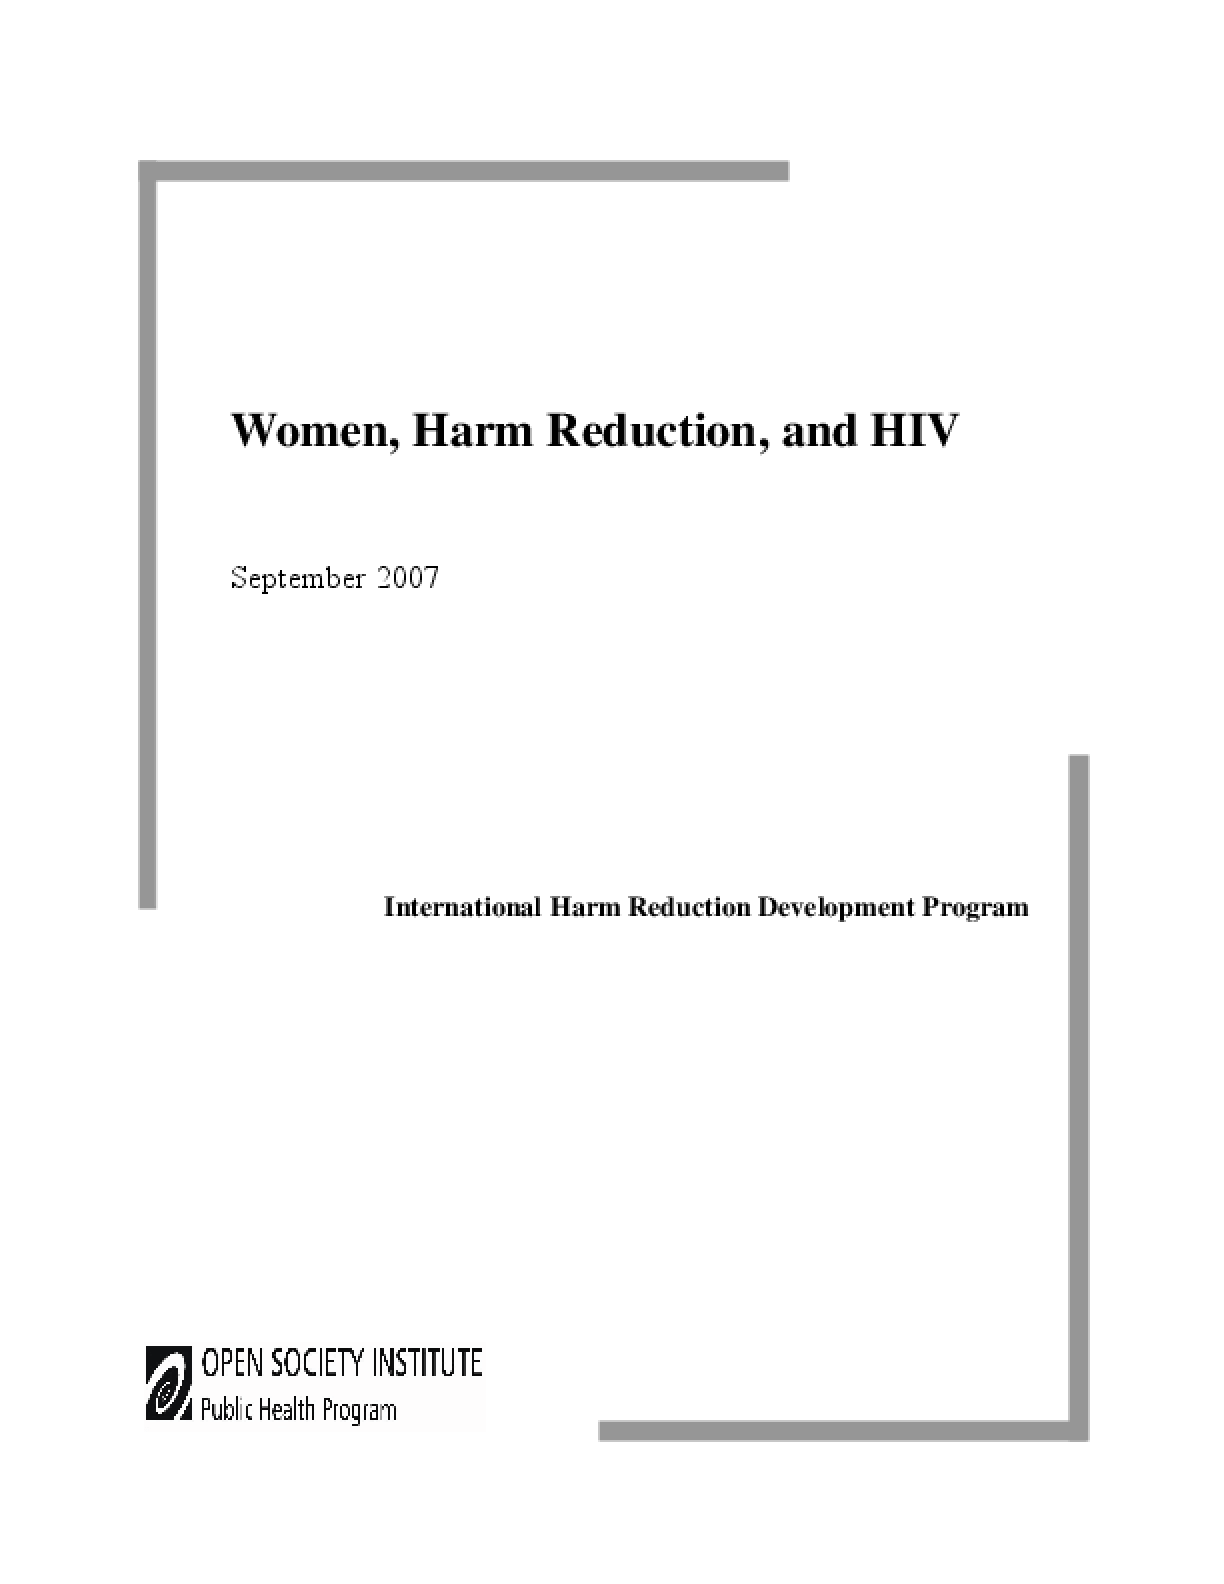 Women, Harm Reduction, and HIV